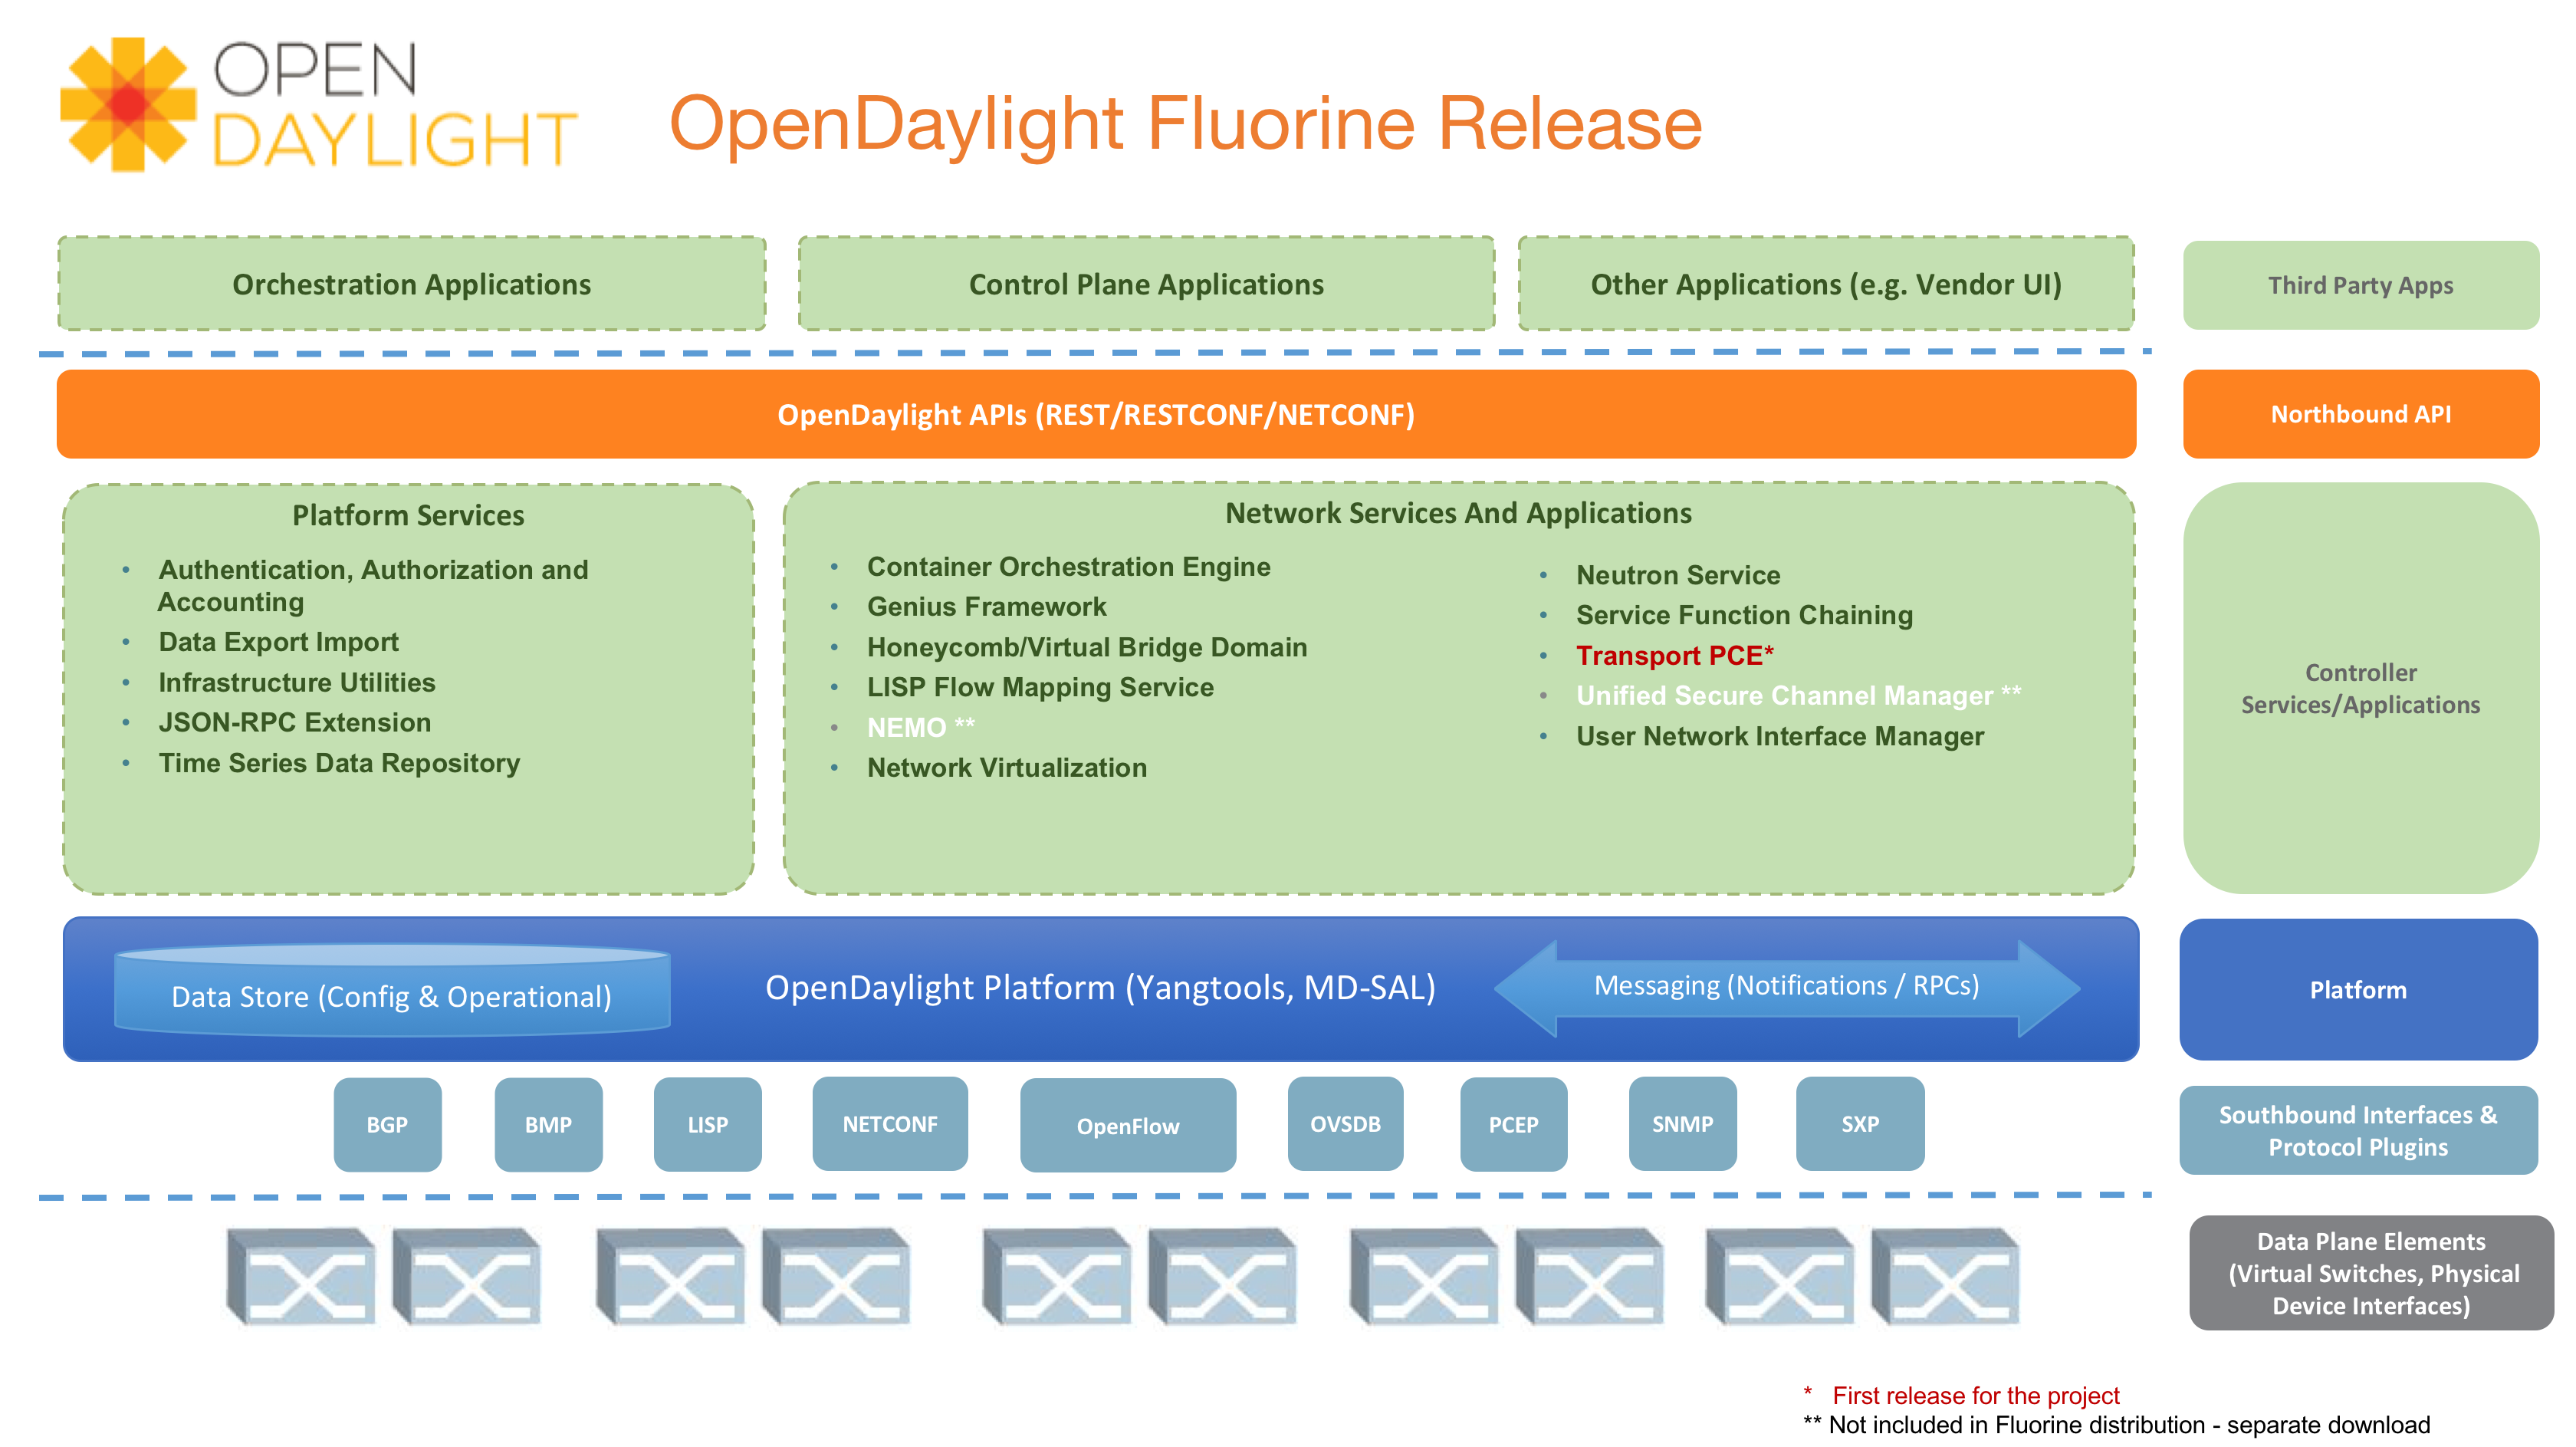 Fluorine Is The Ninth Release Of Opendaylight With This Version Project Has Moved To A System Managed Releases Streamlined Packaging